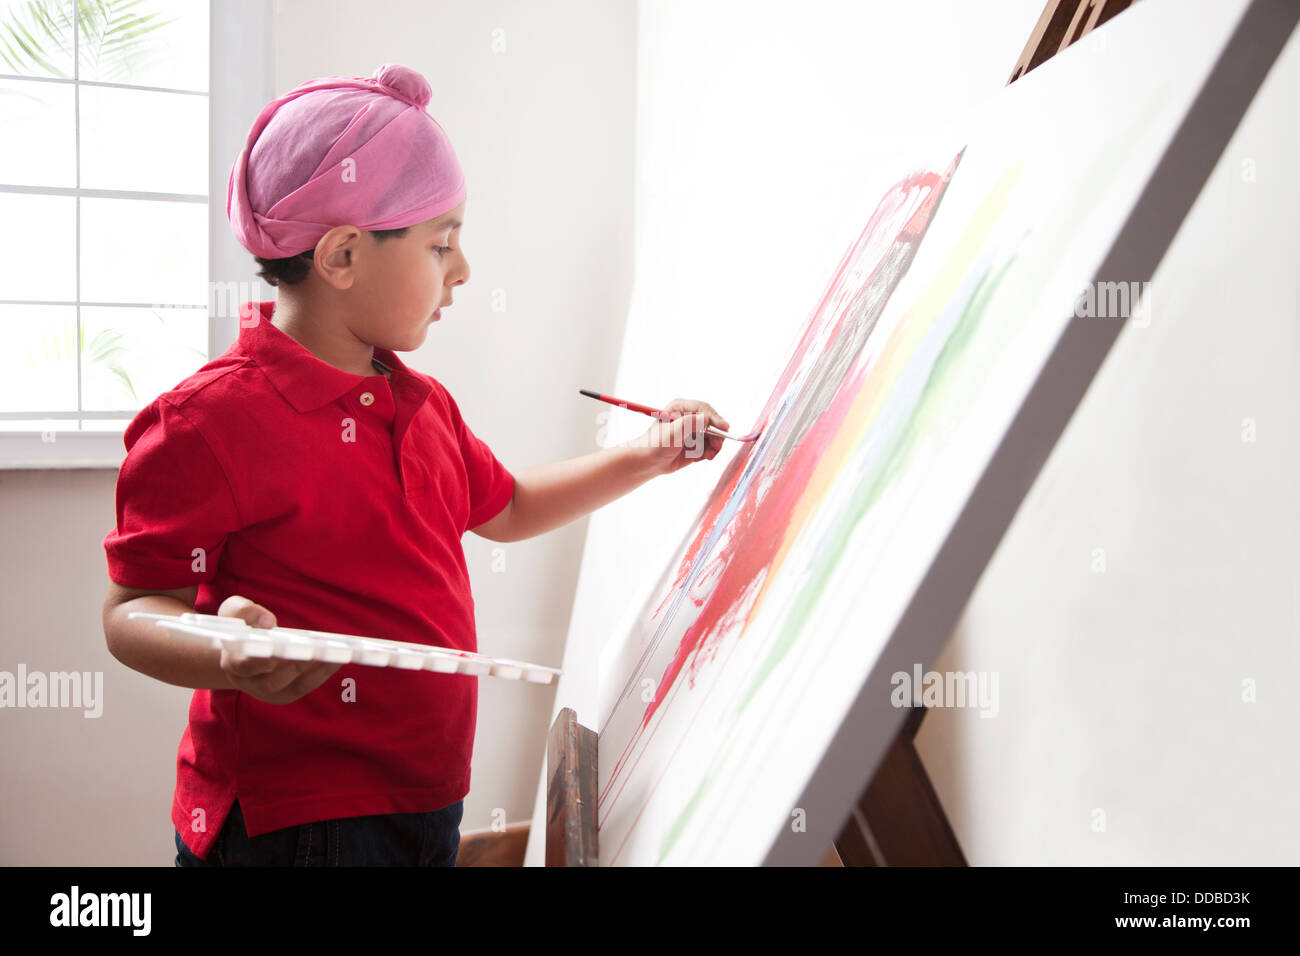 Cute little boy painting on artist's canvas with paintbrush - Stock Image